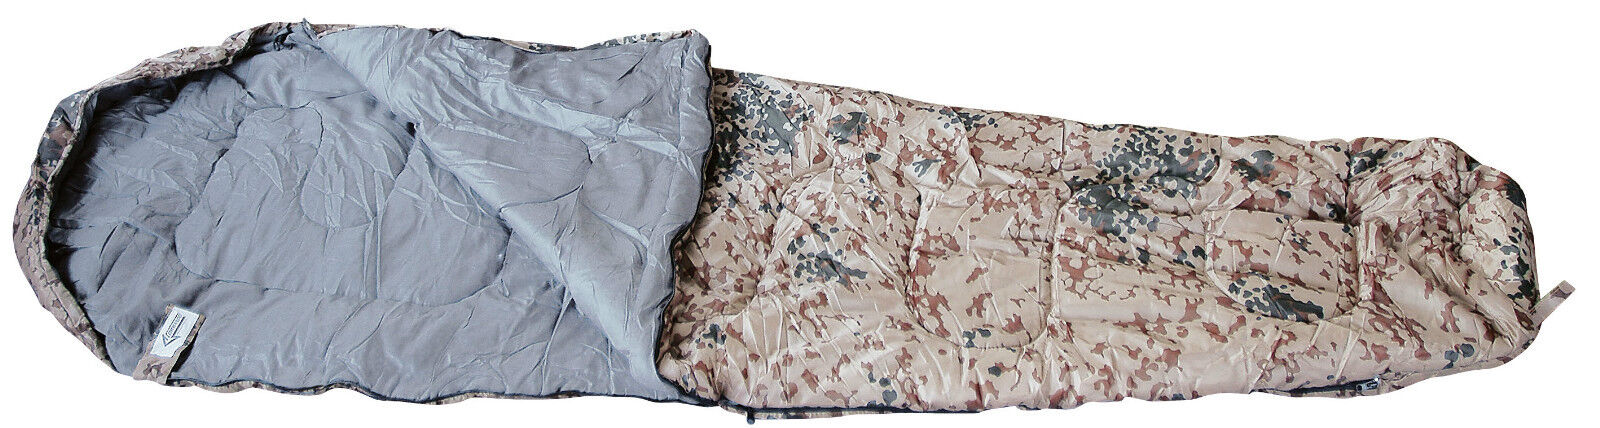 Army Mummy Sleeping Bag US Bw Bundeswehr  Tropical Camouflage Iraq Afghanista  the cheapest